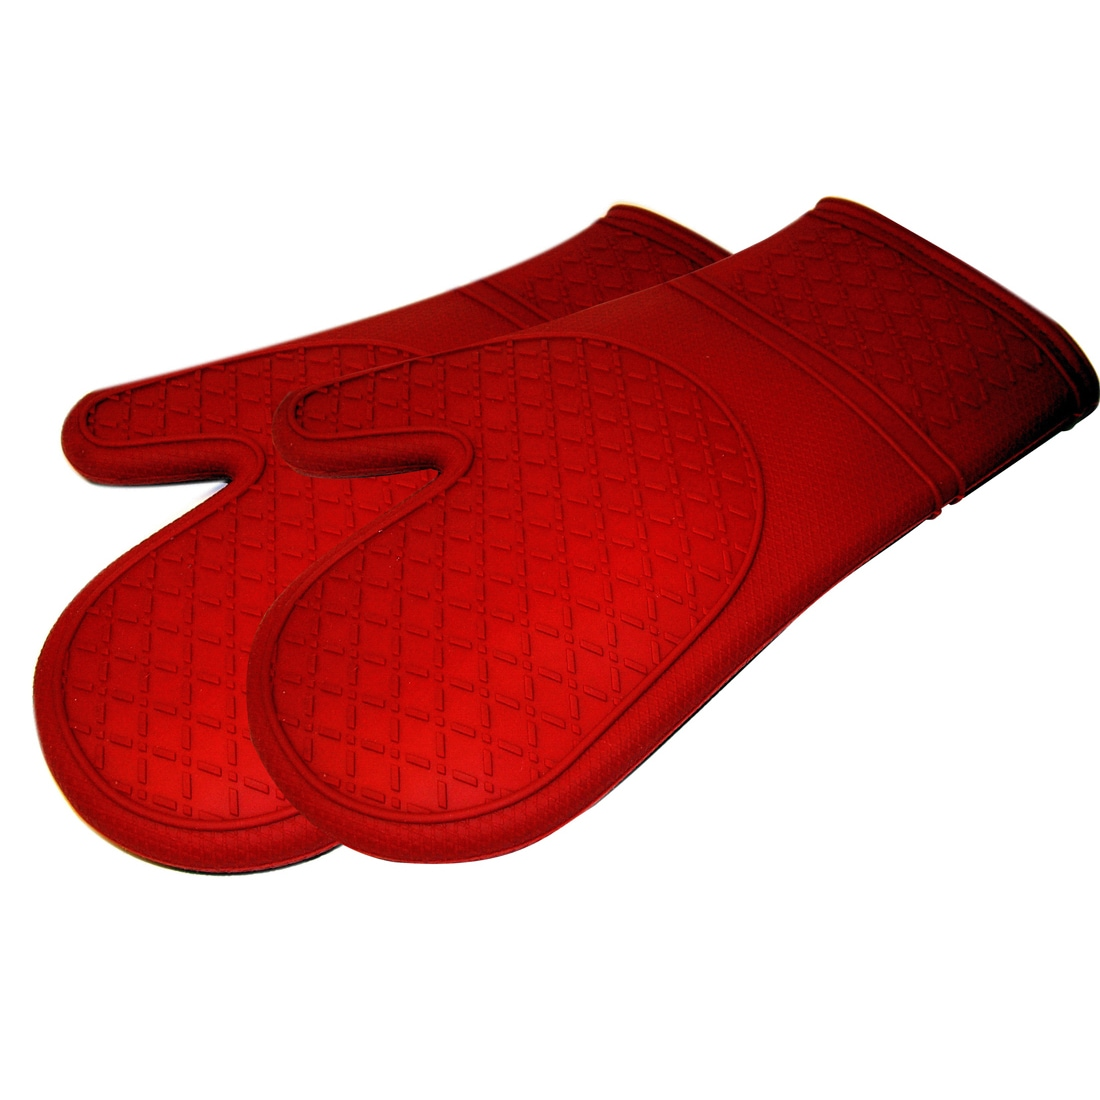 Genial Shop Le Chef Ultra Flex Silicone Padded Kitchen Oven Mitt Set (Pack Of 2)    Free Shipping On Orders Over $45   Overstock.com   5307056